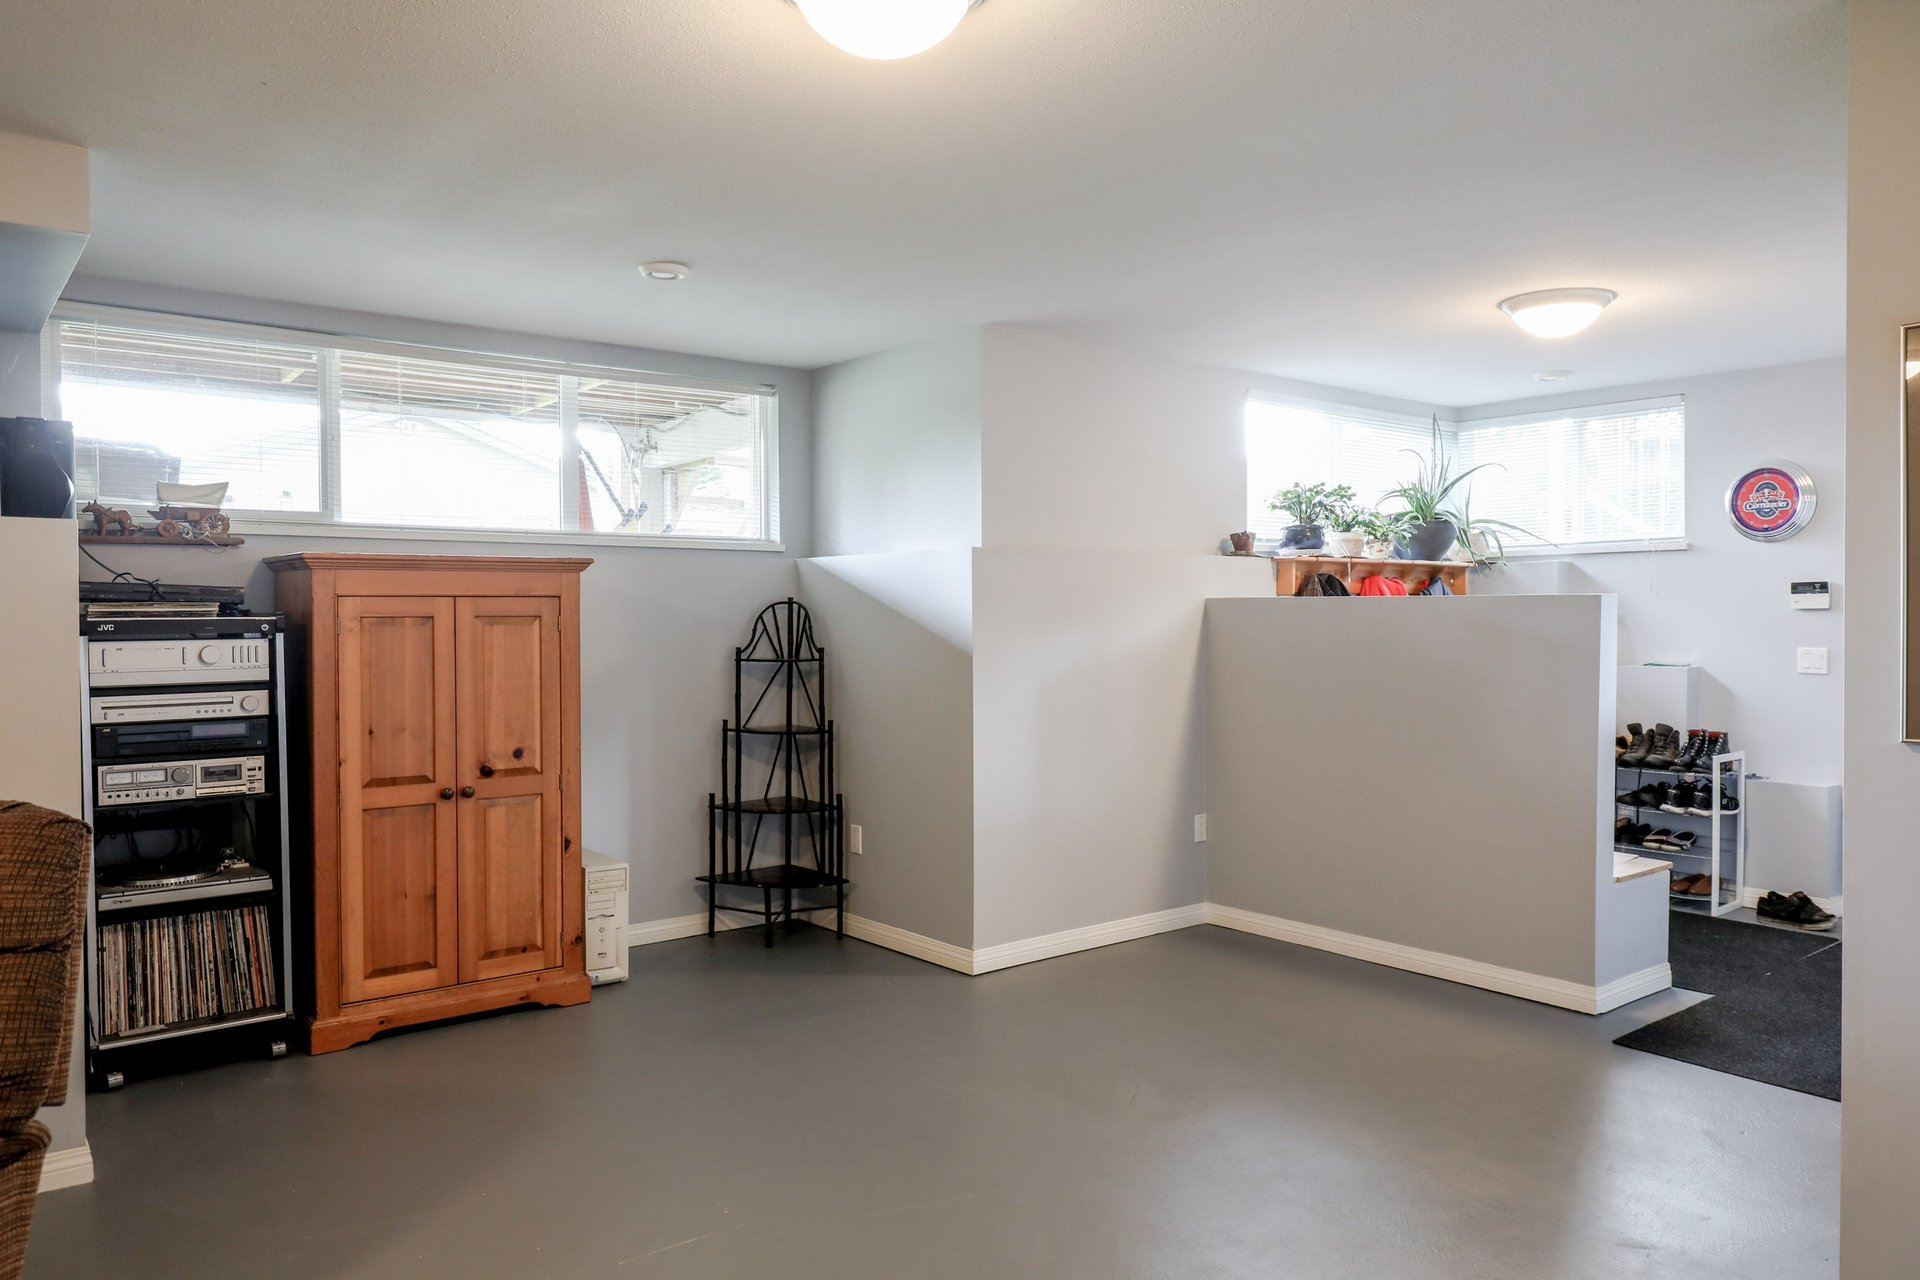 Rec room - 453 East 16th Street, North Vancouver